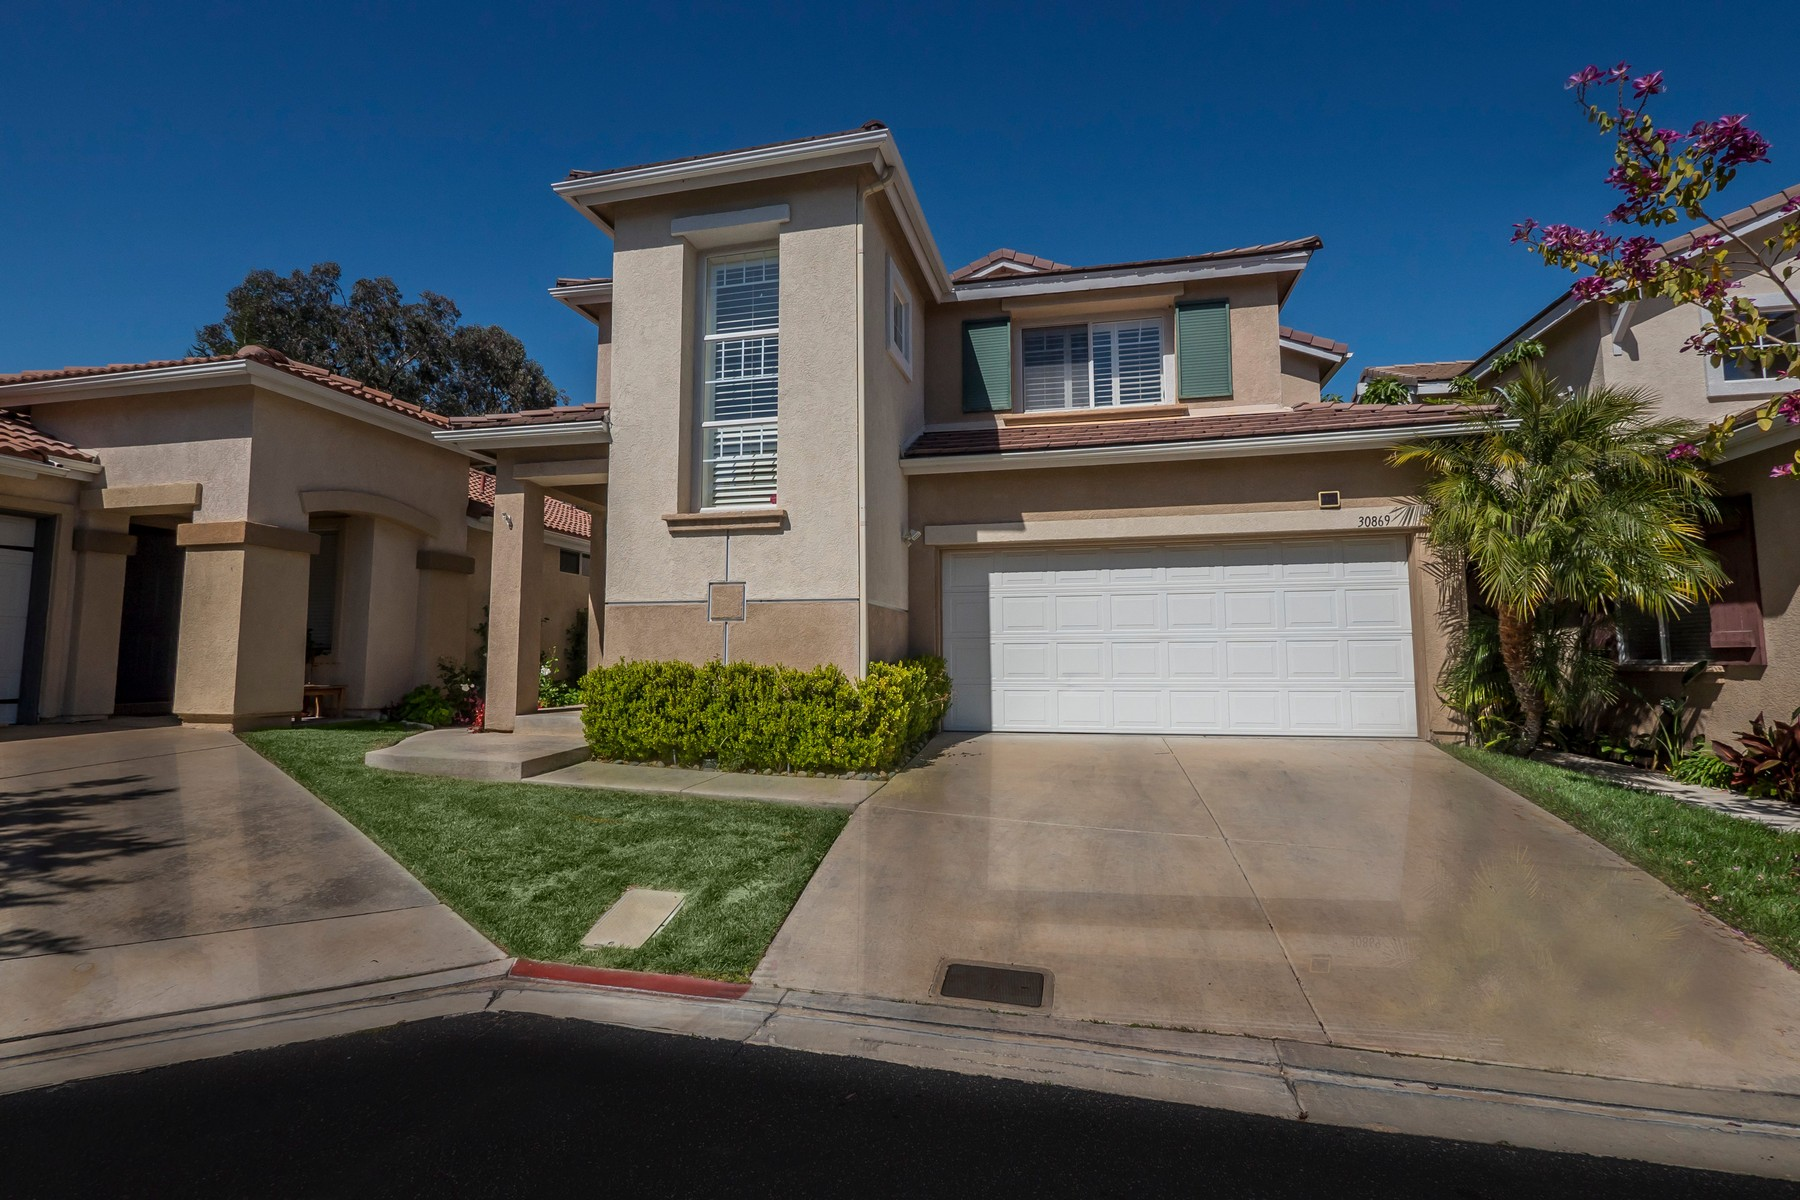 Townhouse for Sale at Champagne Ct. 30869 Champagne Ct Westlake Village, California, 91362 United States